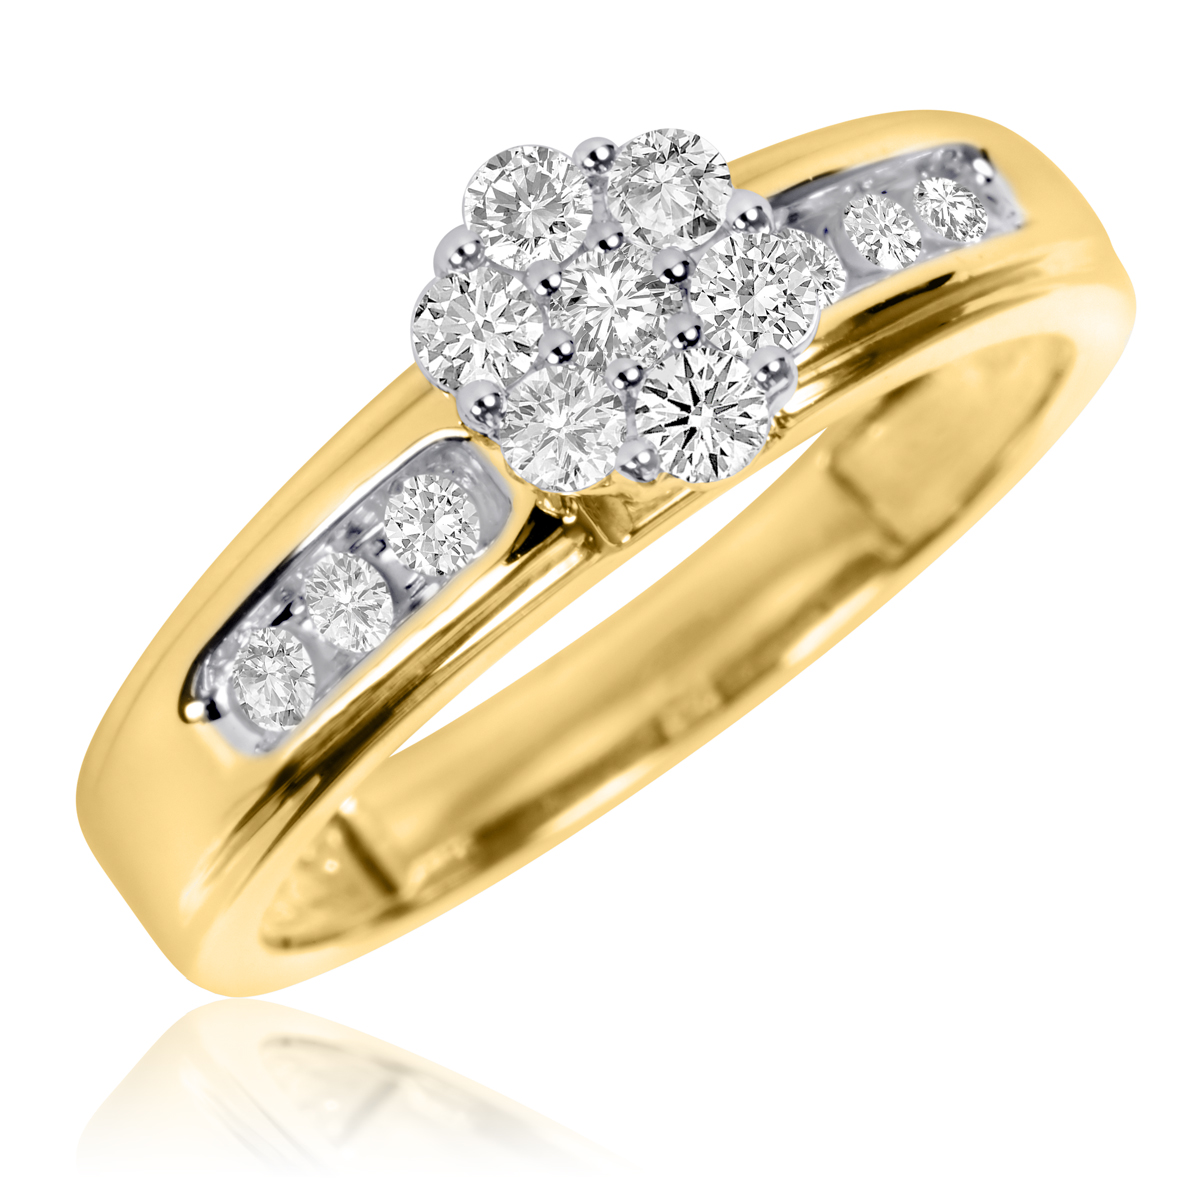 3 8 carat t w diamond ladies 39 engagement ring 10k yellow. Black Bedroom Furniture Sets. Home Design Ideas